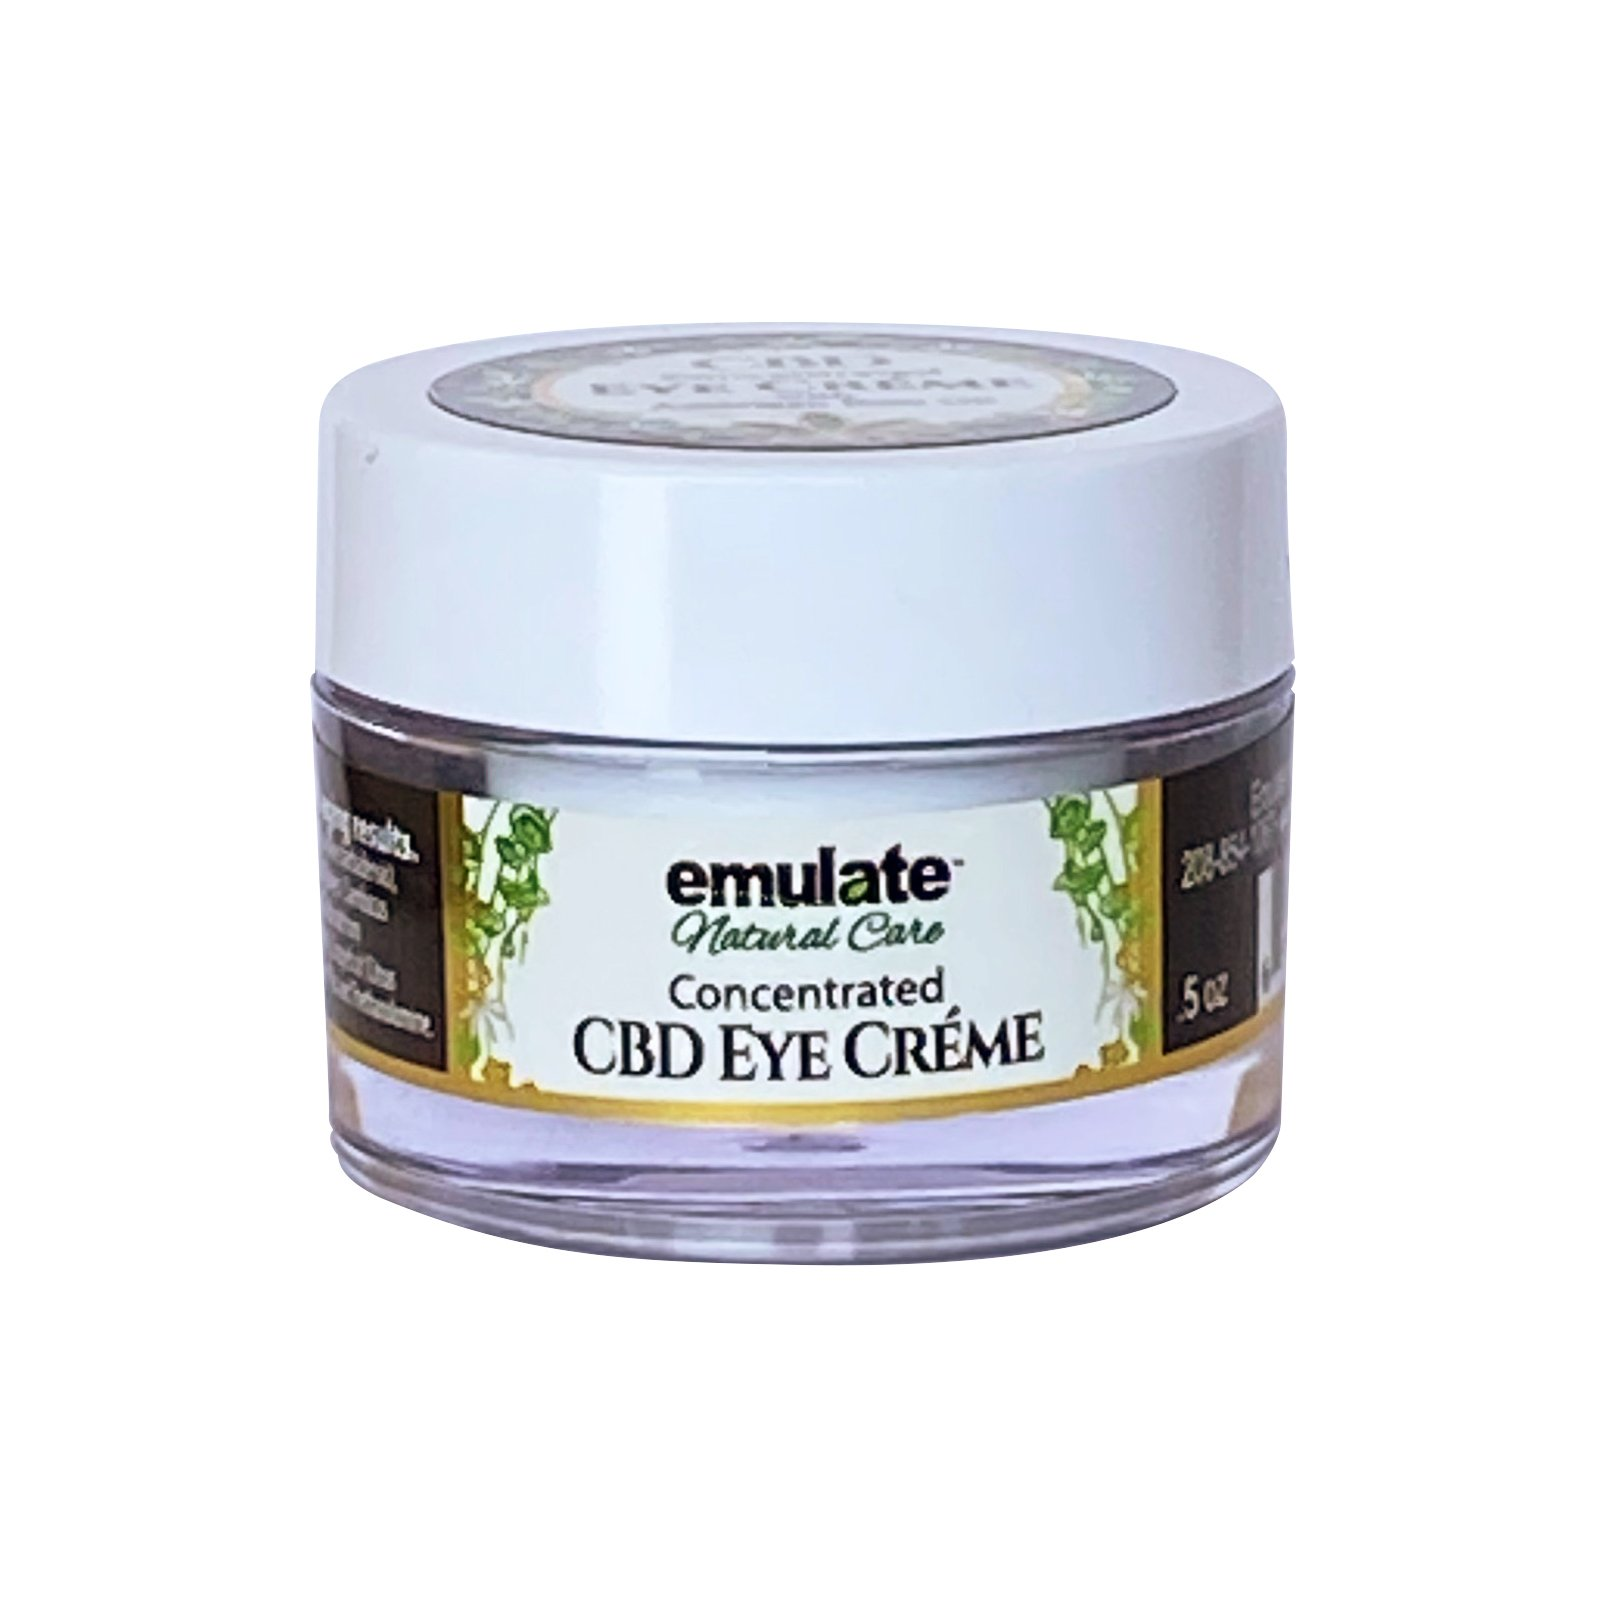 CBD Concentrated Eye Creme